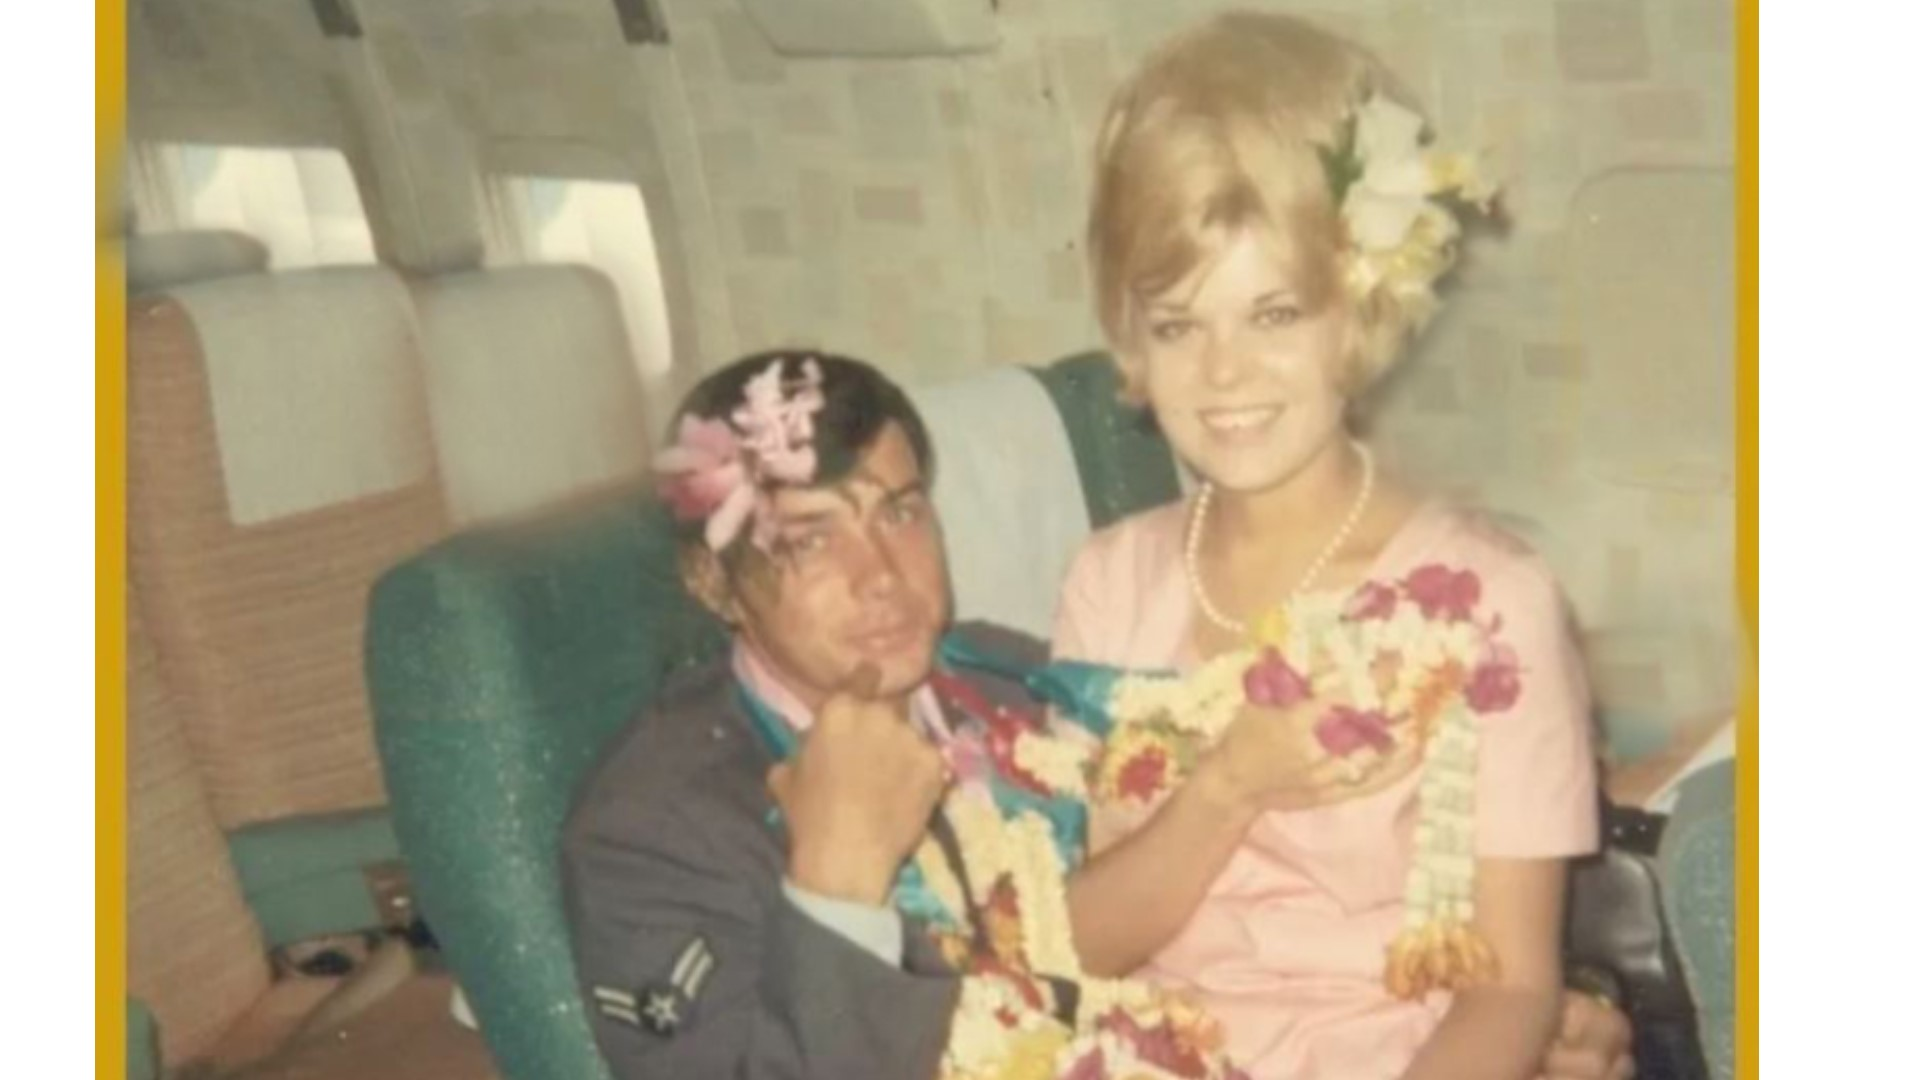 Vietnam Veteran And Air Hostess Reunite 52 Years After Memorable Photo Wfaa Com